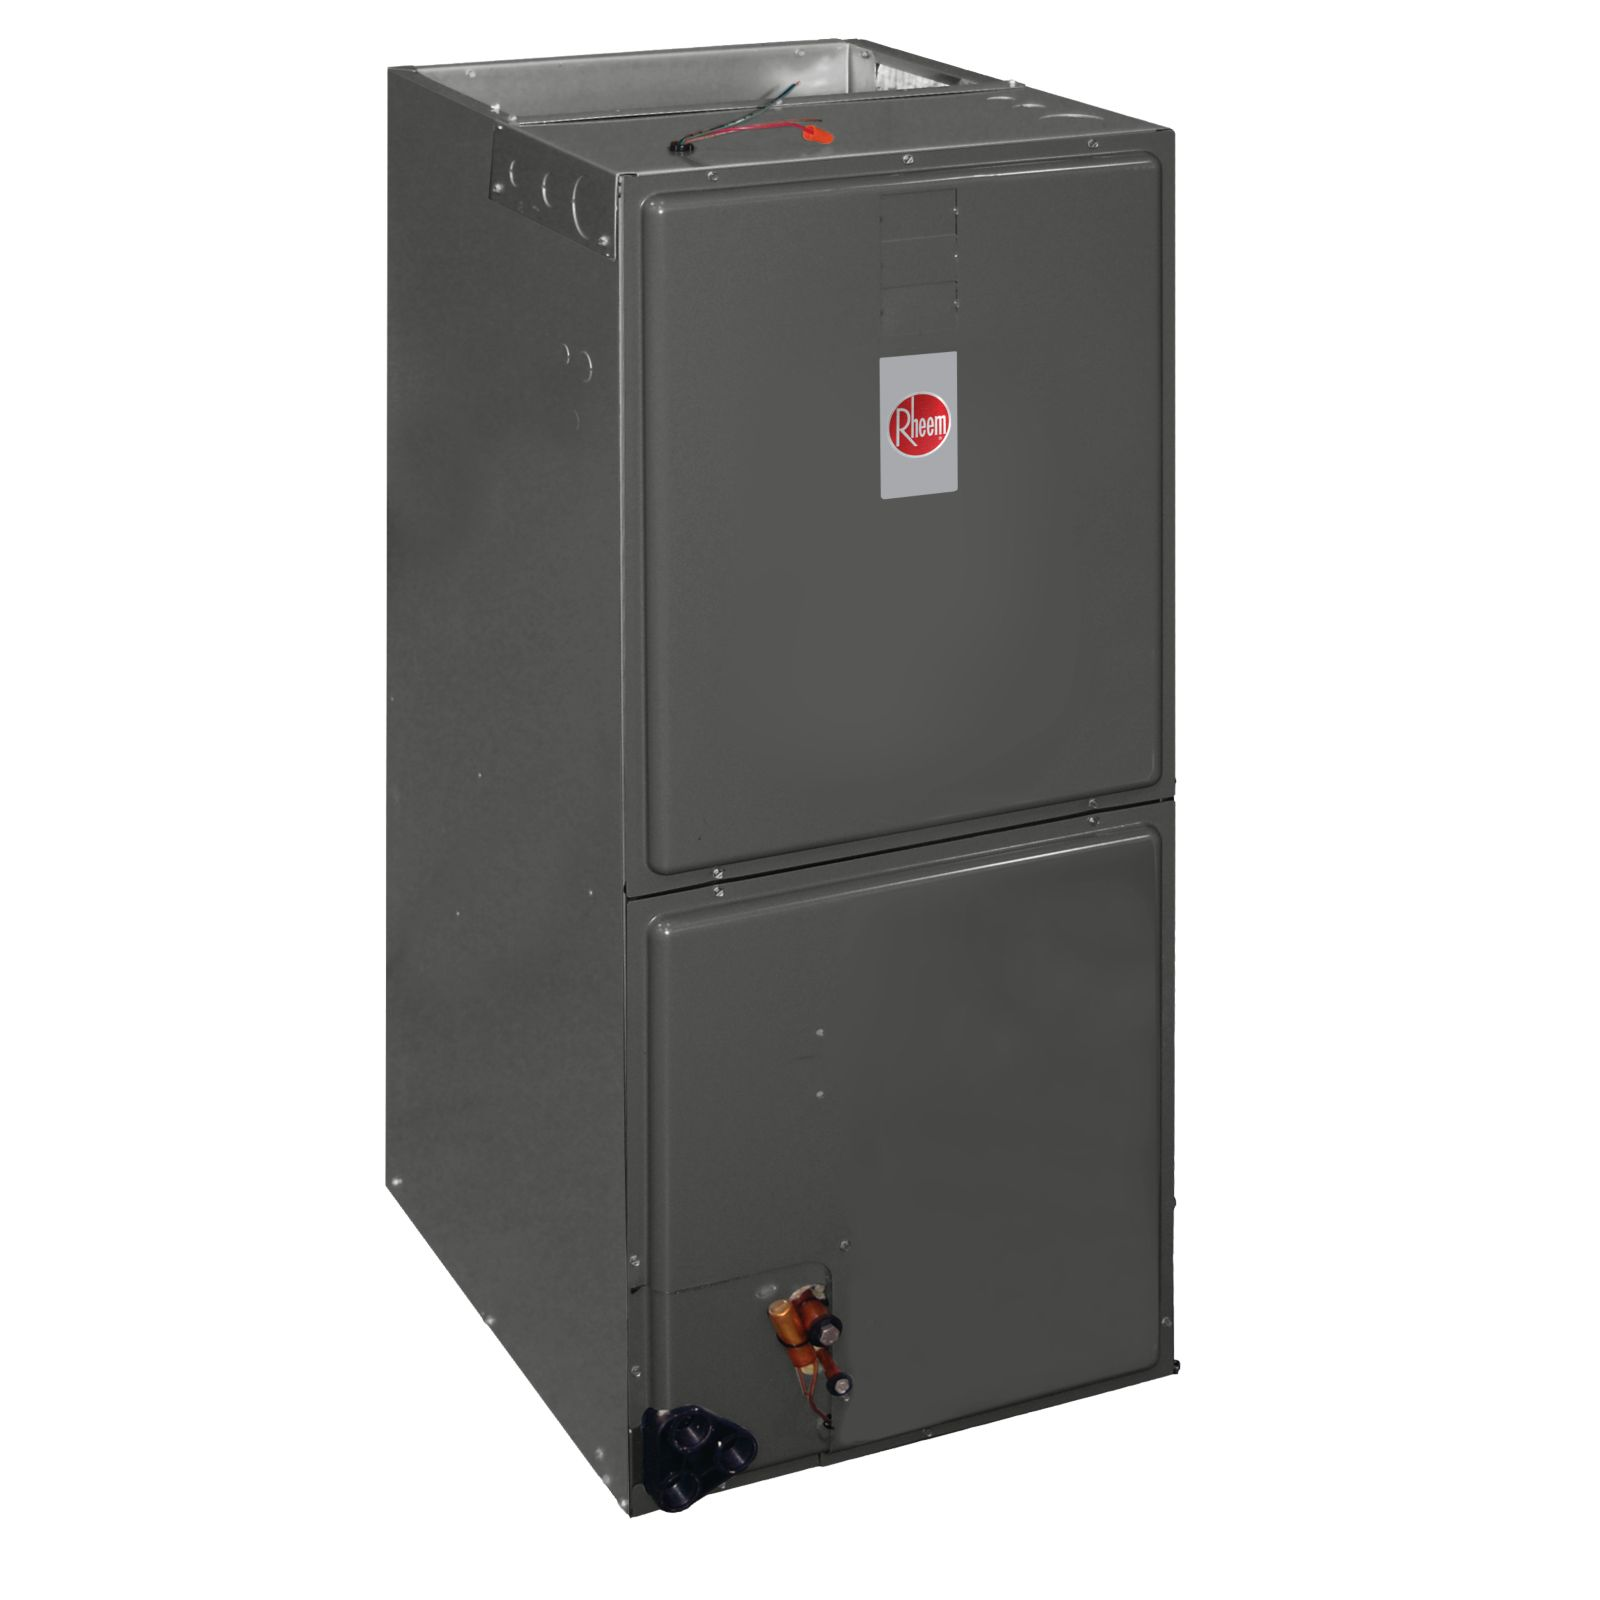 Rheem RHPL-HM2421JC - Premium 2 Ton Multiposition Air Handler with Comfort Control - Up to 16 SEER - R410A - ECM Motor